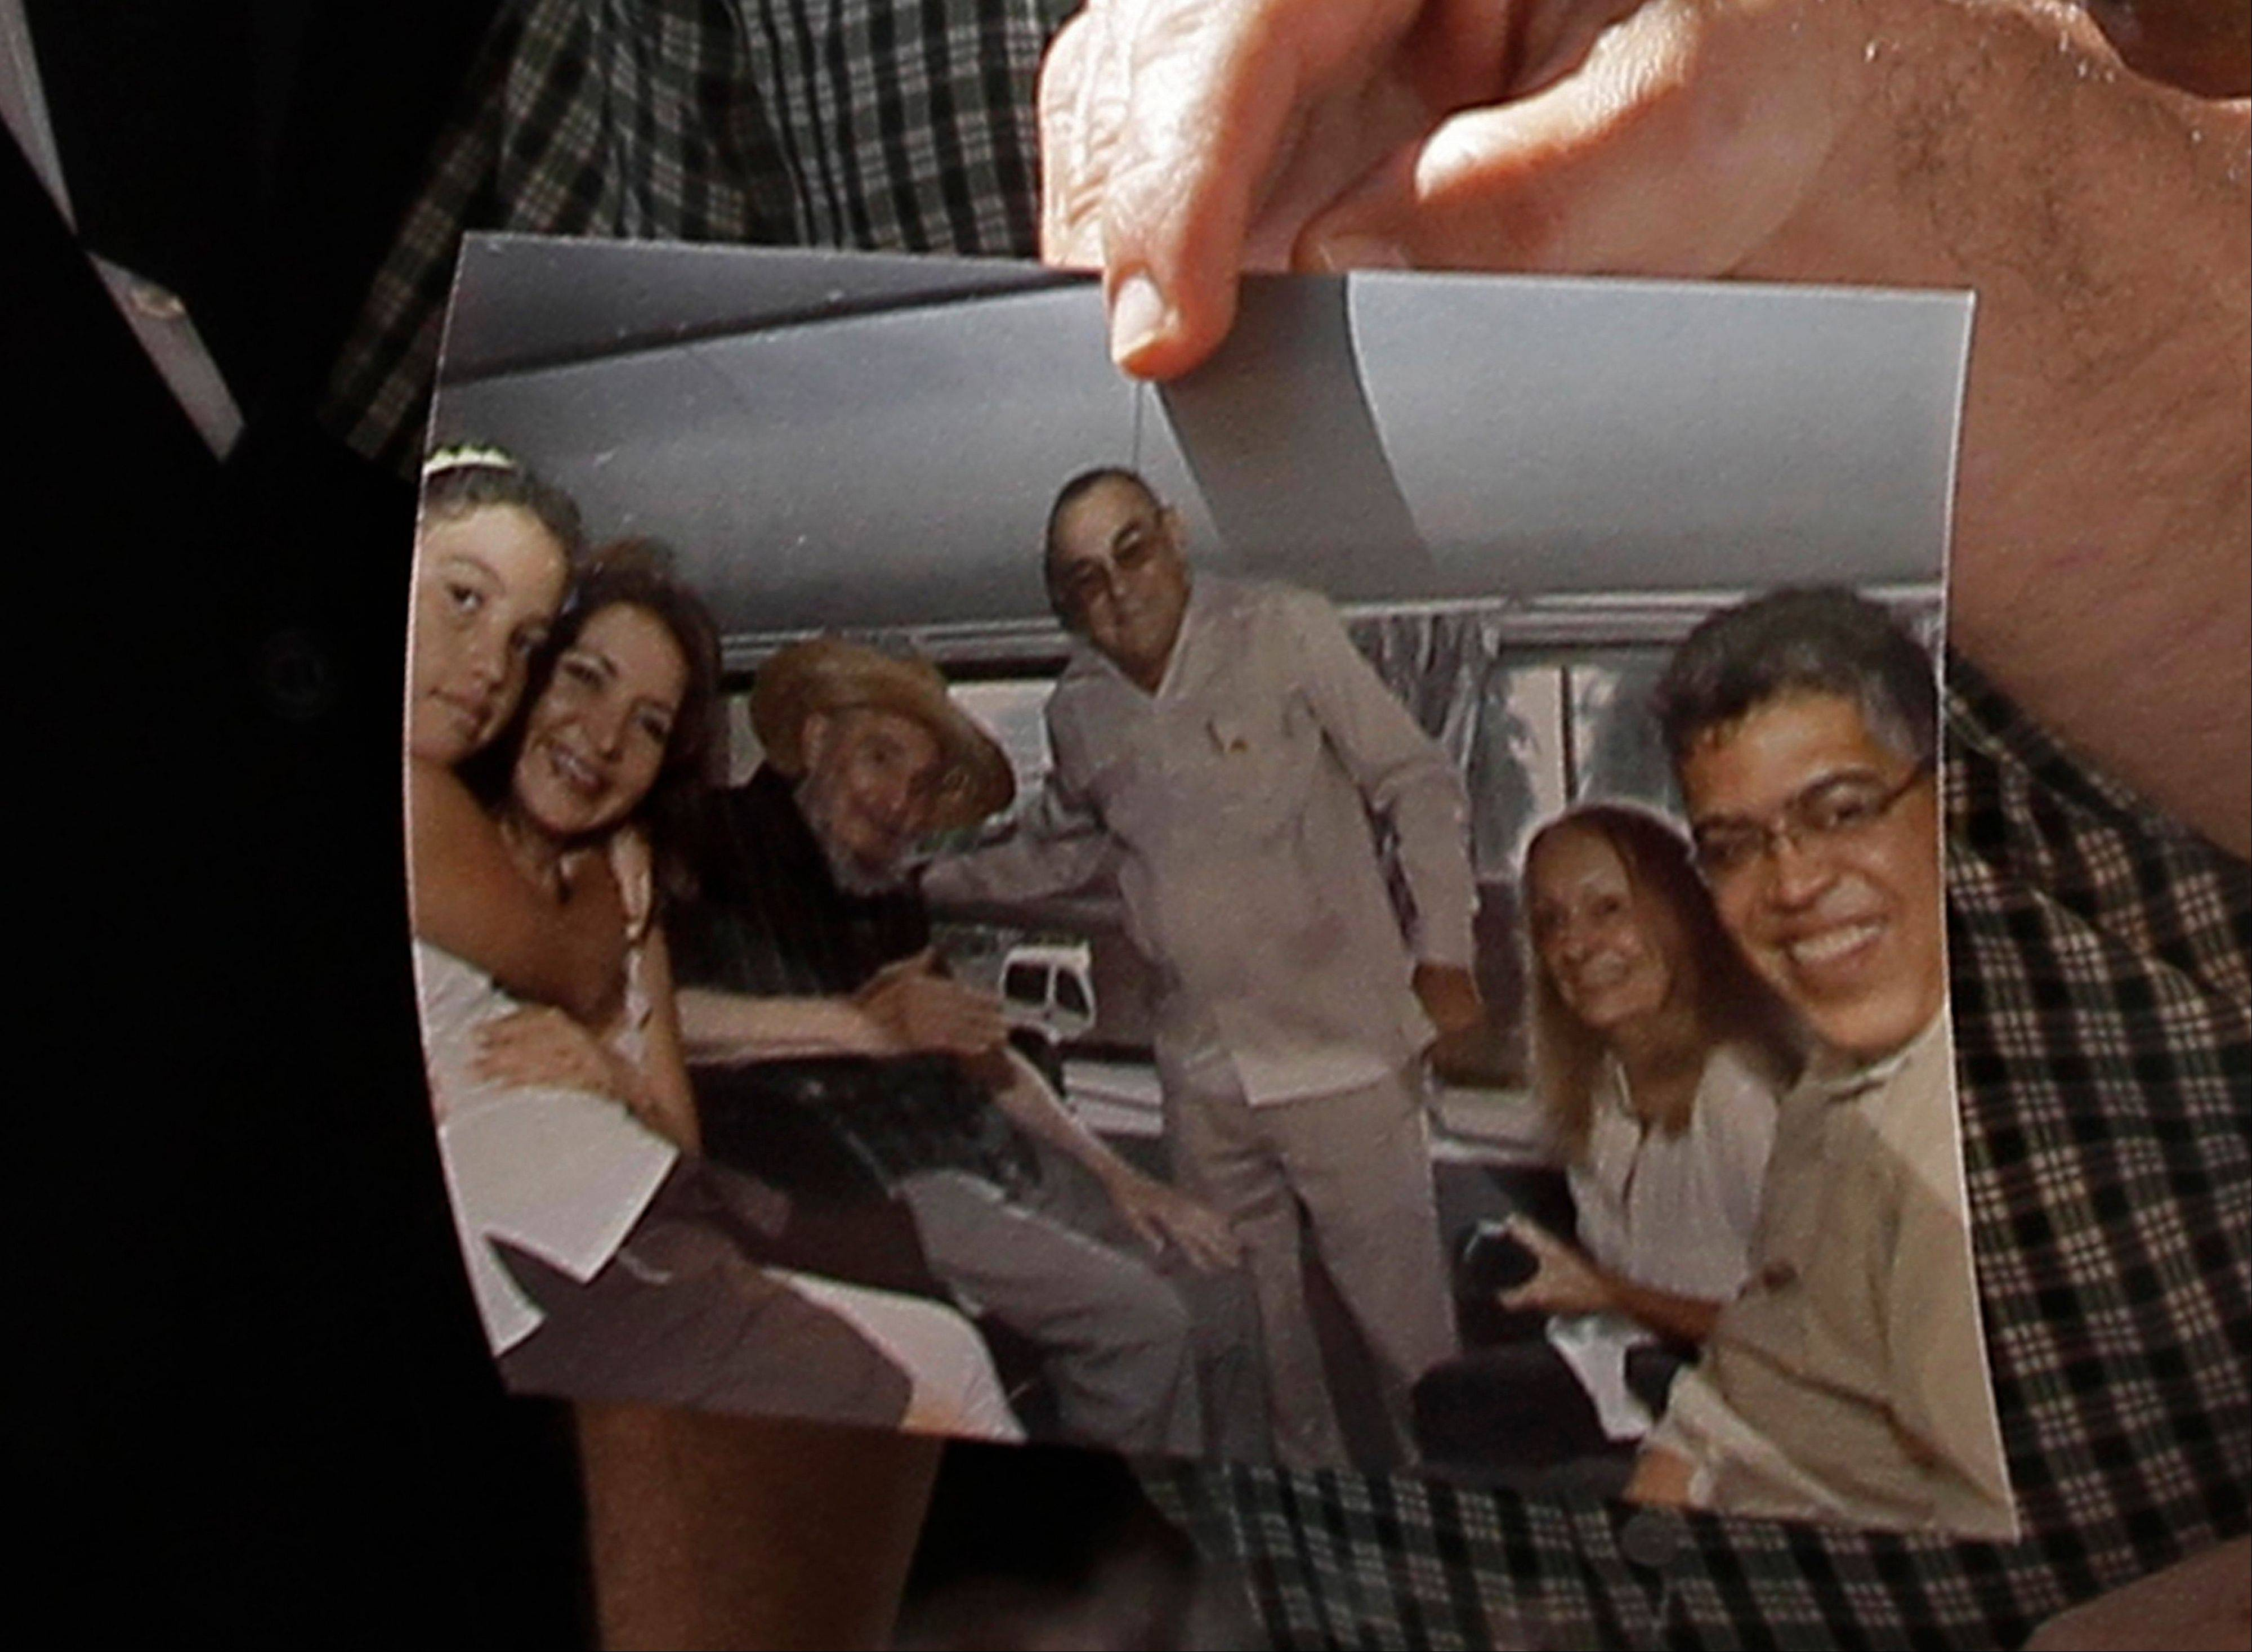 Former Venezuelan Vice President Elias Jaua shows a picture of Cuba's leader Fidel Castro, third from left, in Havana Sunday. According to Jaua, the picture was taken Saturday inside a van.